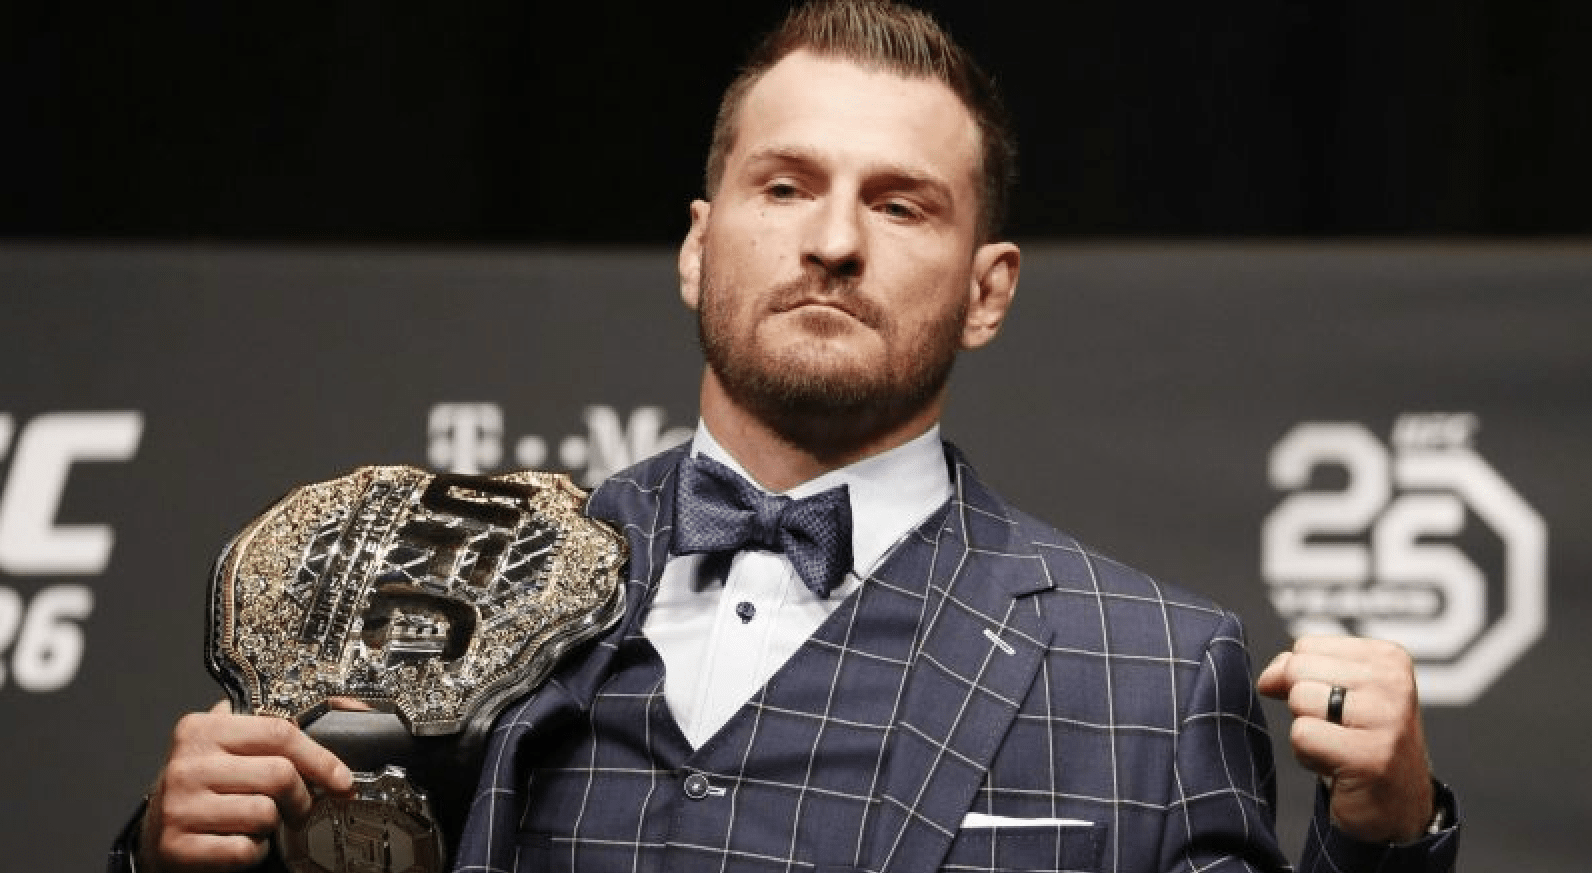 UFC: Stipe Miocic Isn't Concerned With Fighting During The Pandemic